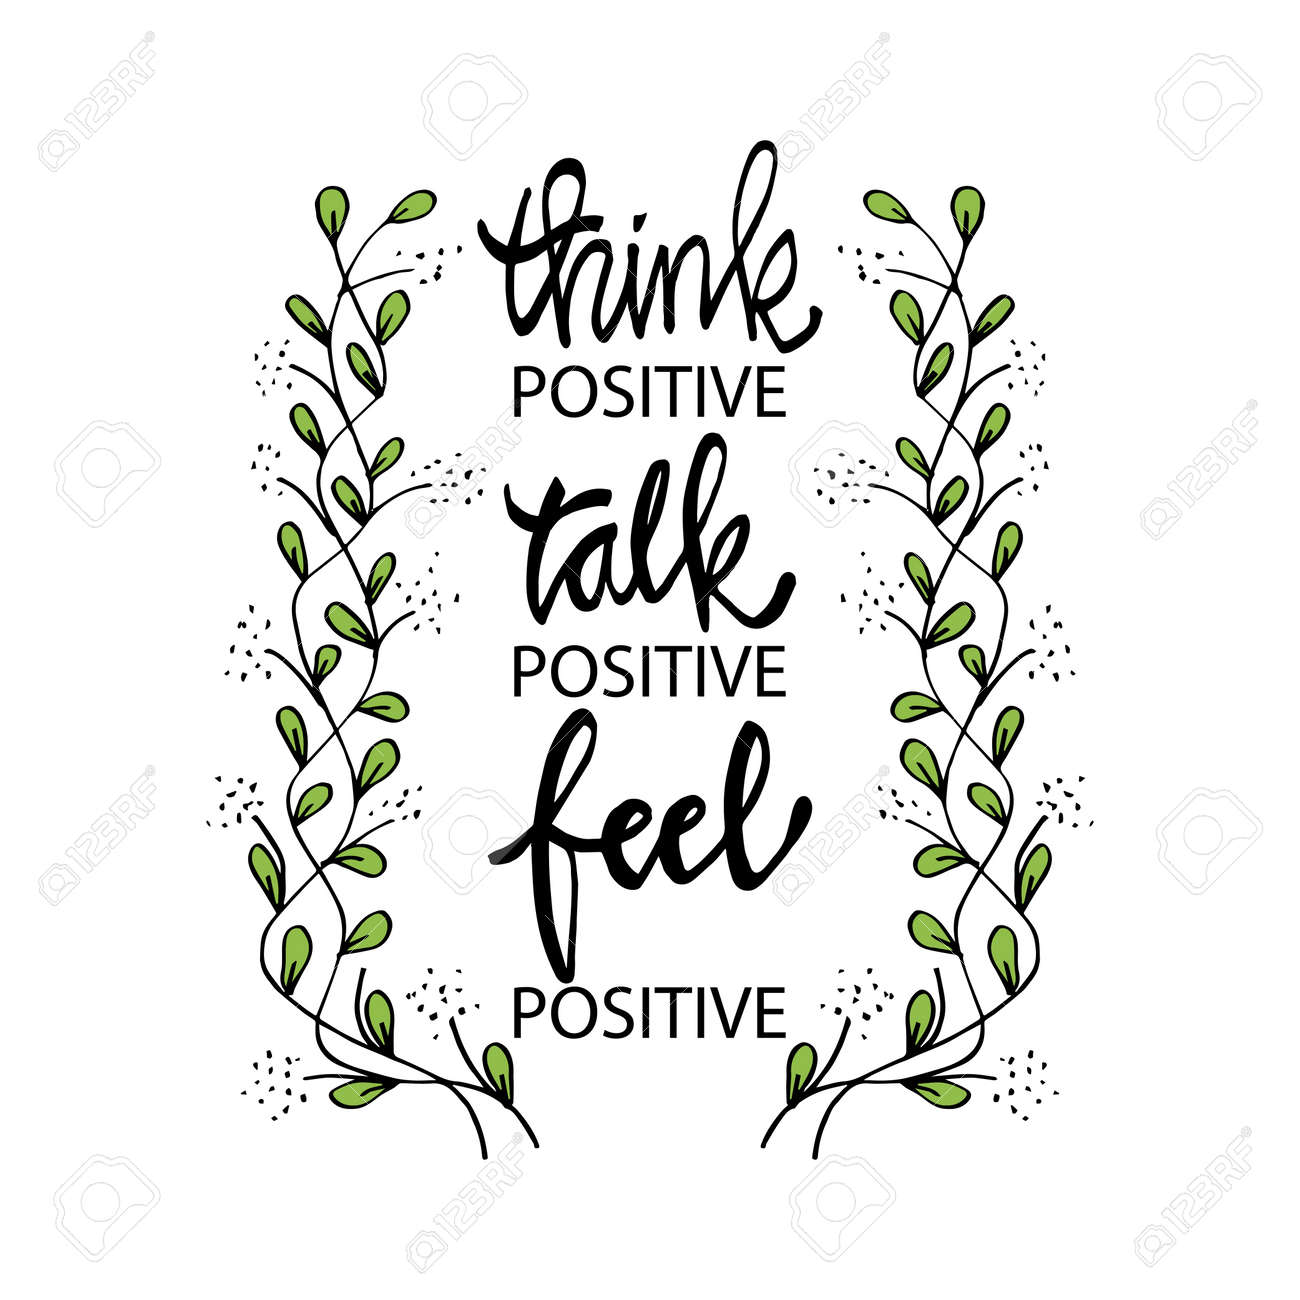 Think positive talk positive feel positive. Inspirational quotes